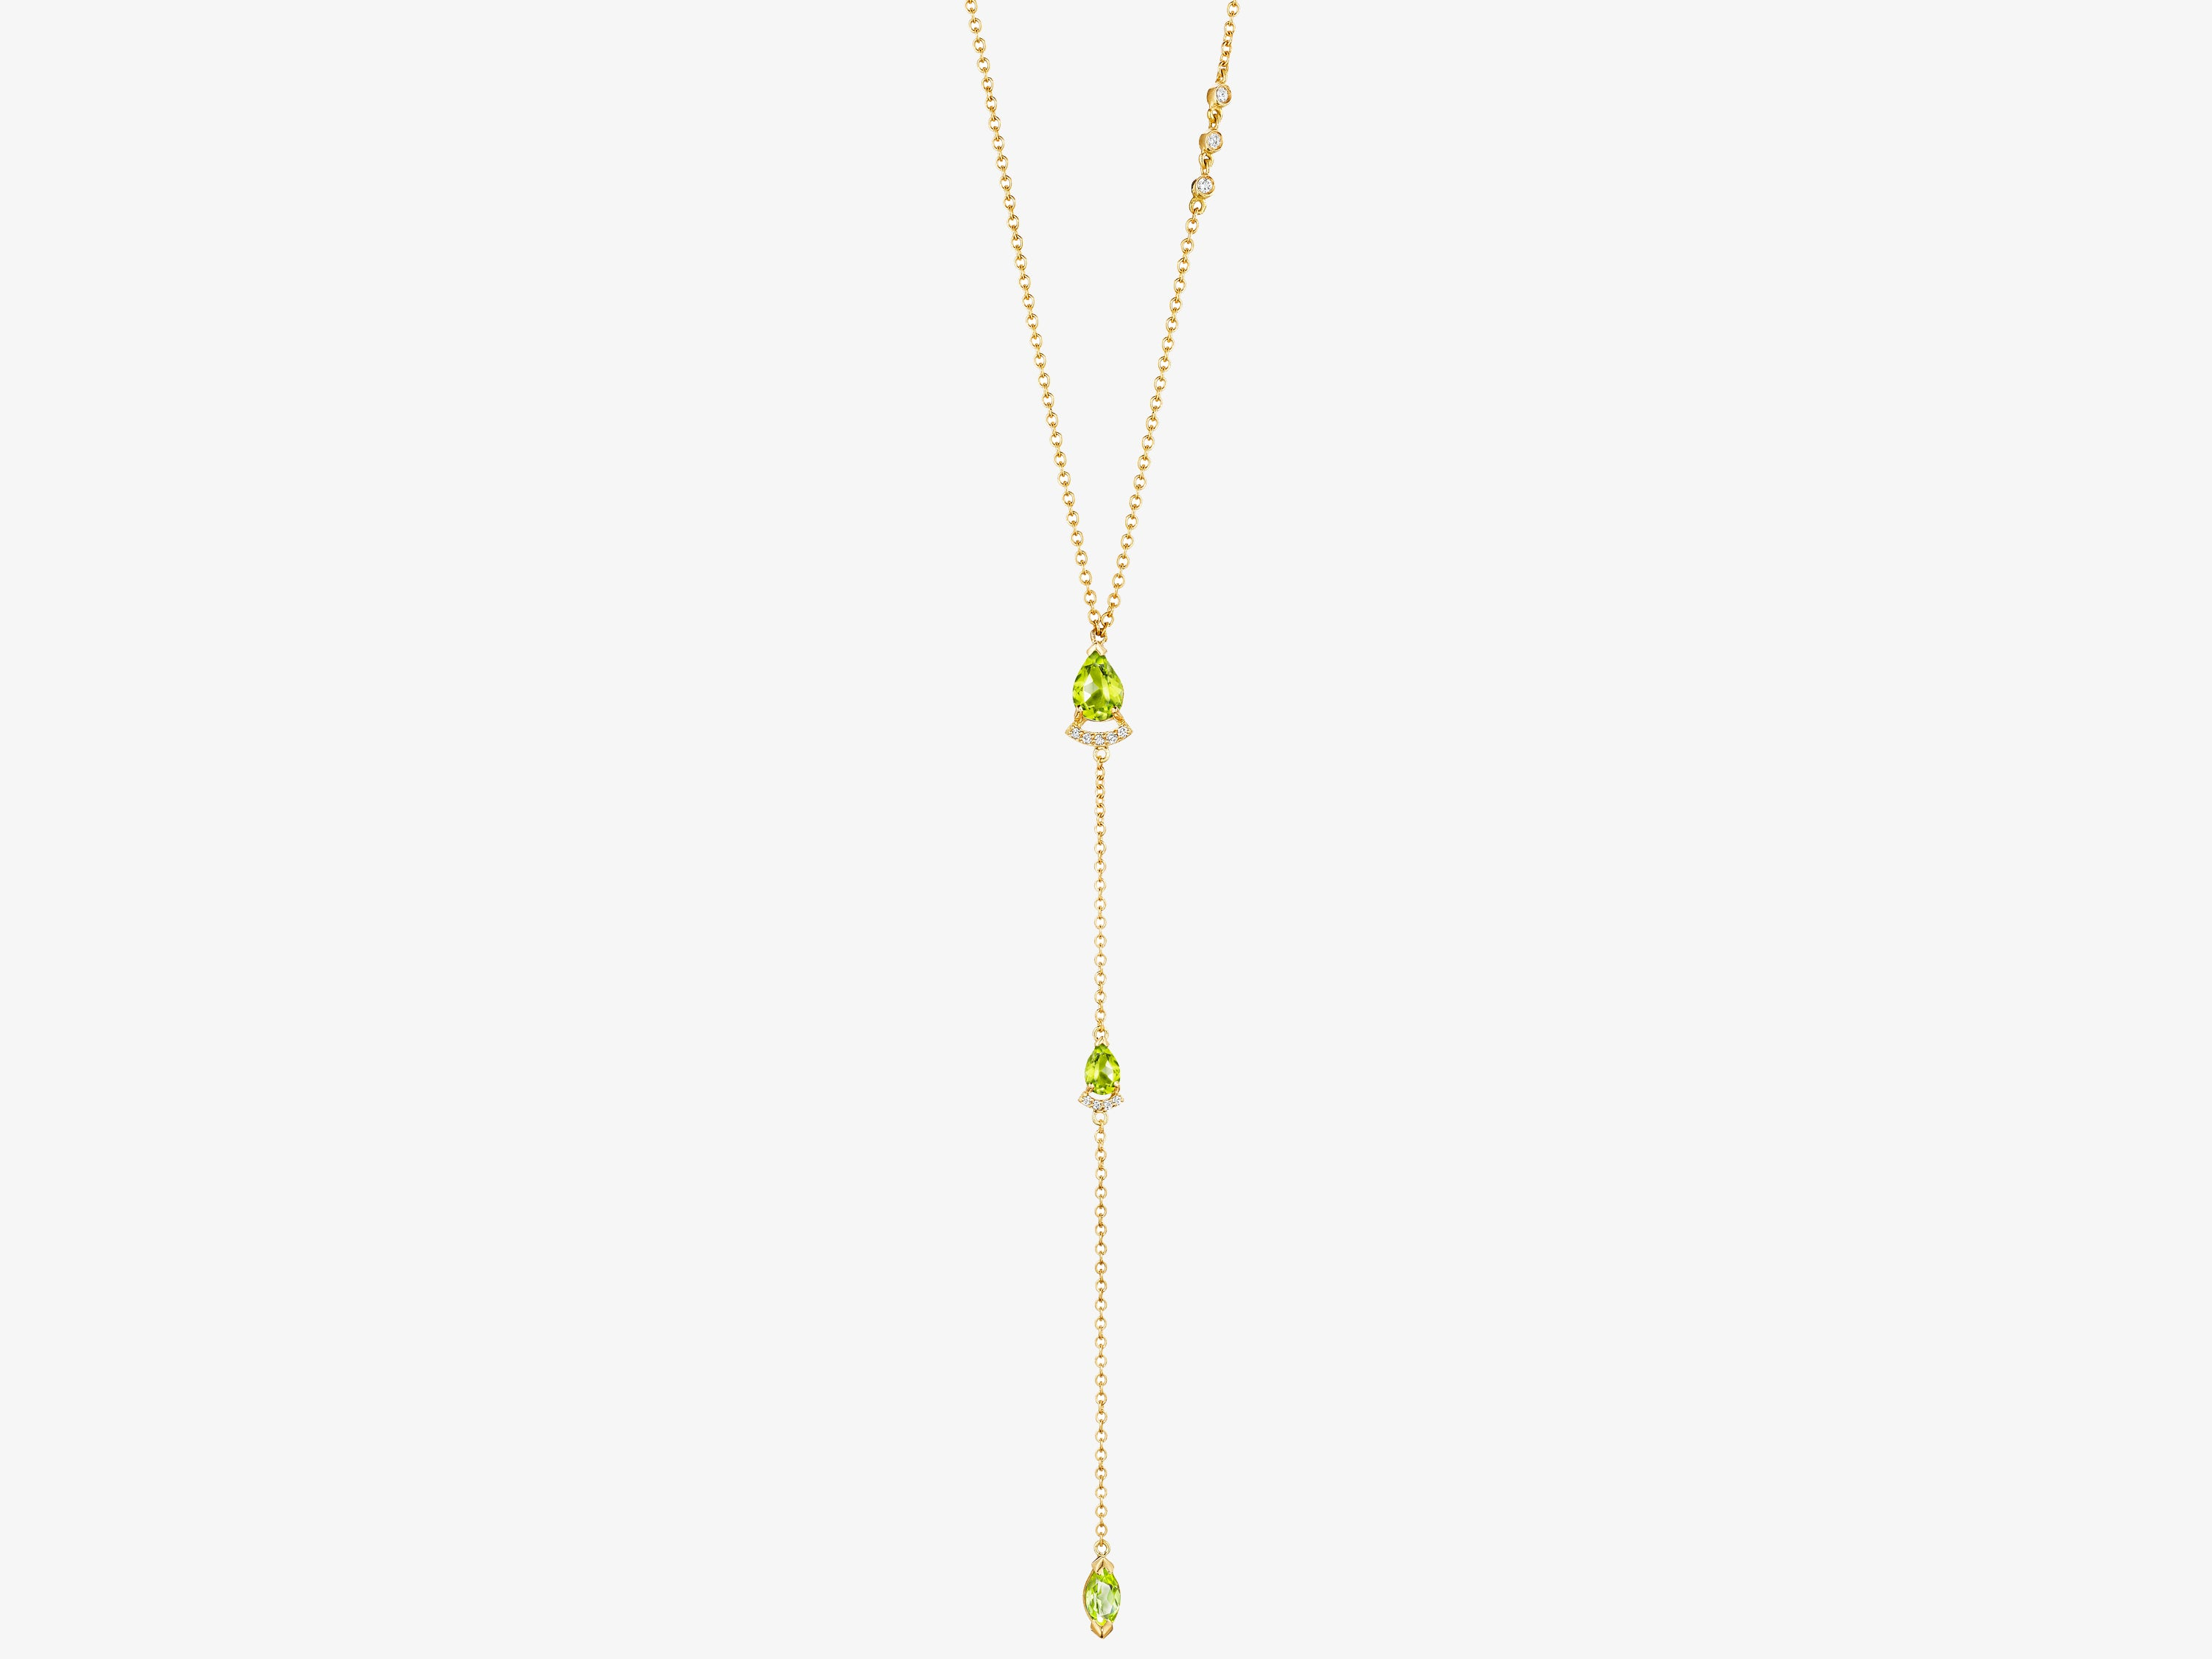 Necklace with Pear Shaped Gemstones and Marquise Gemstone Drop